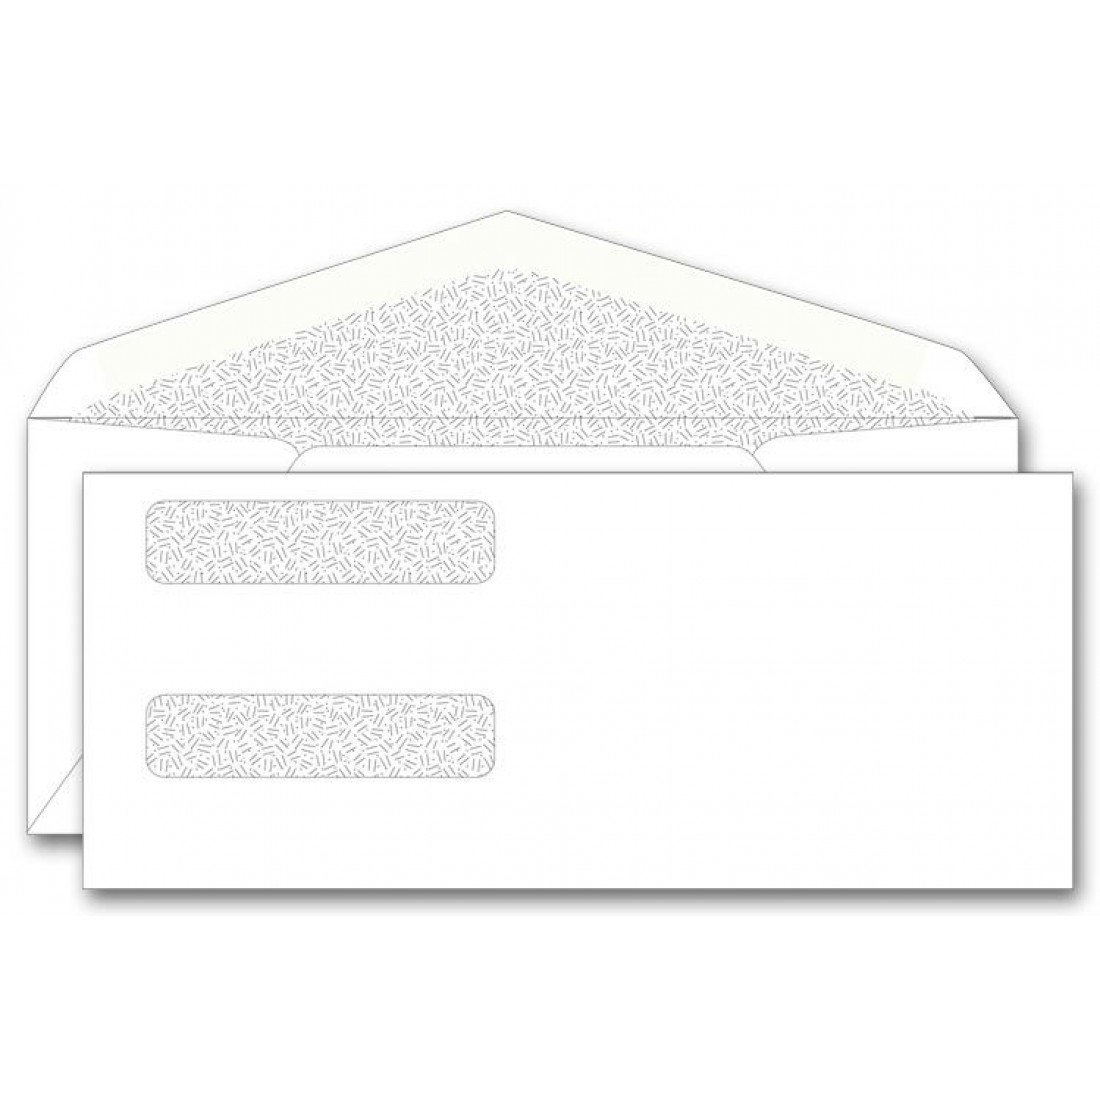 Confidential double window envelopes free shipping for Window envelopes